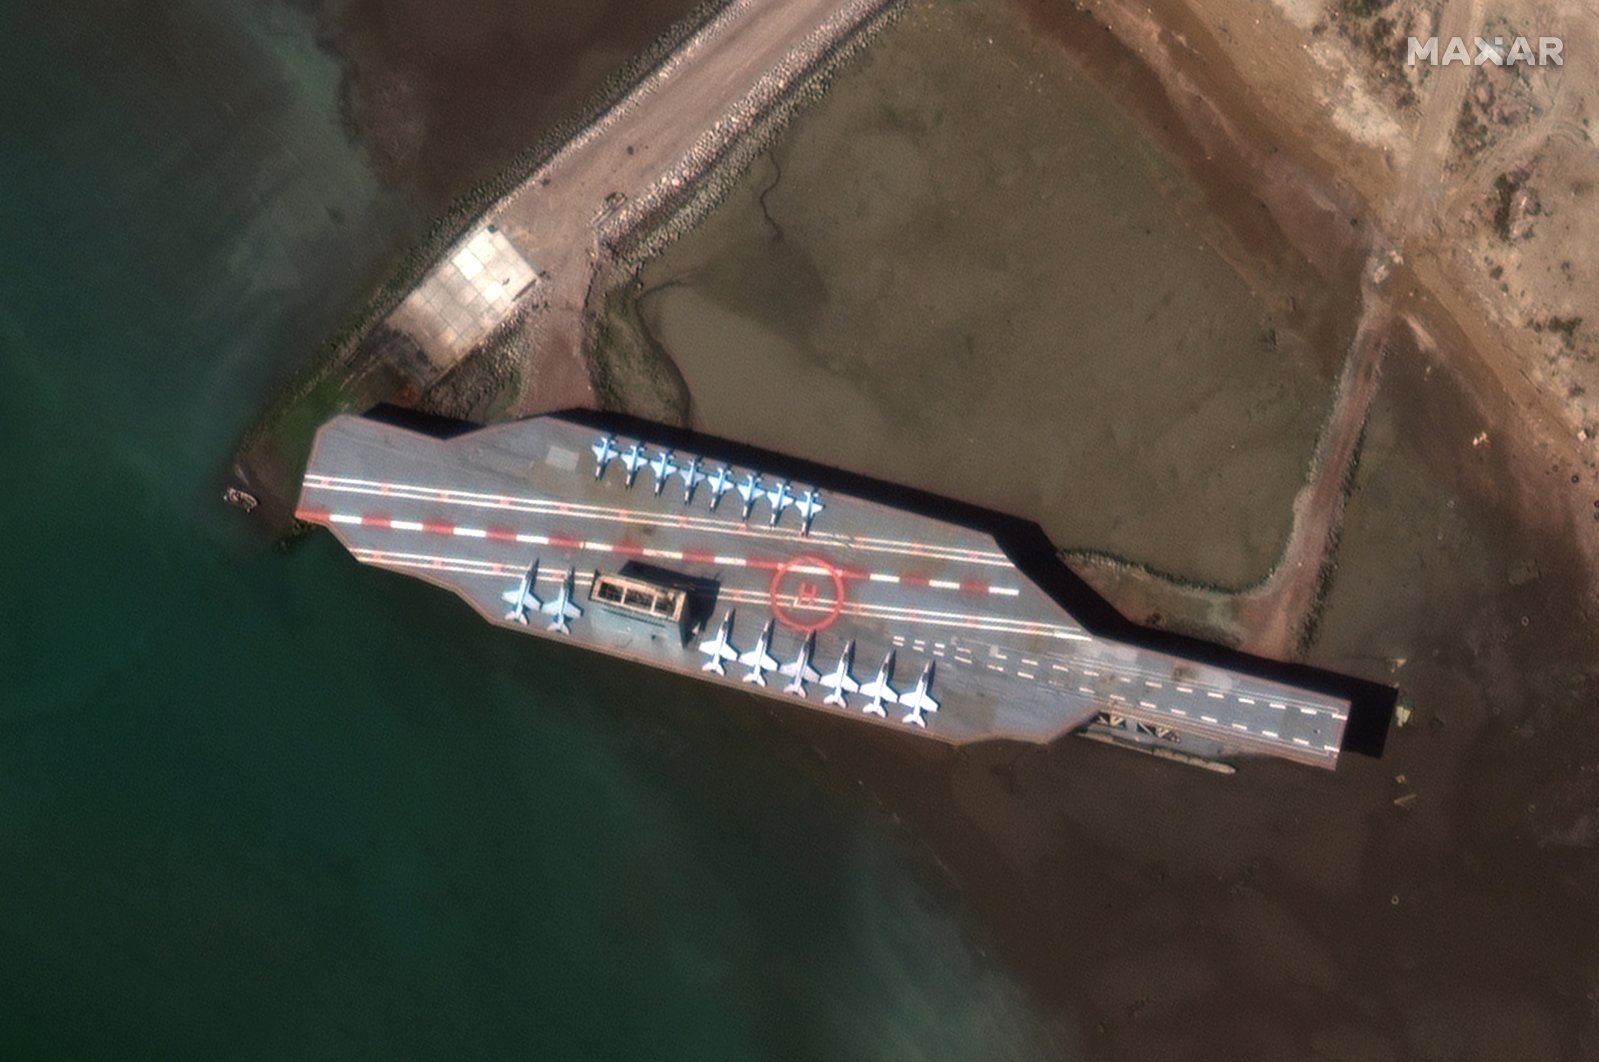 Iran's refurbished mock-up aircraft carrier, used previously as a simulated U.S. target during a February 2015 Iranian naval war games exercise, is seen at its homeport of Bandar Abbas, Iran, Feb.y 15, 2020. ( Satellite image ©2020 Maxar Technologies Photo via Reuters)